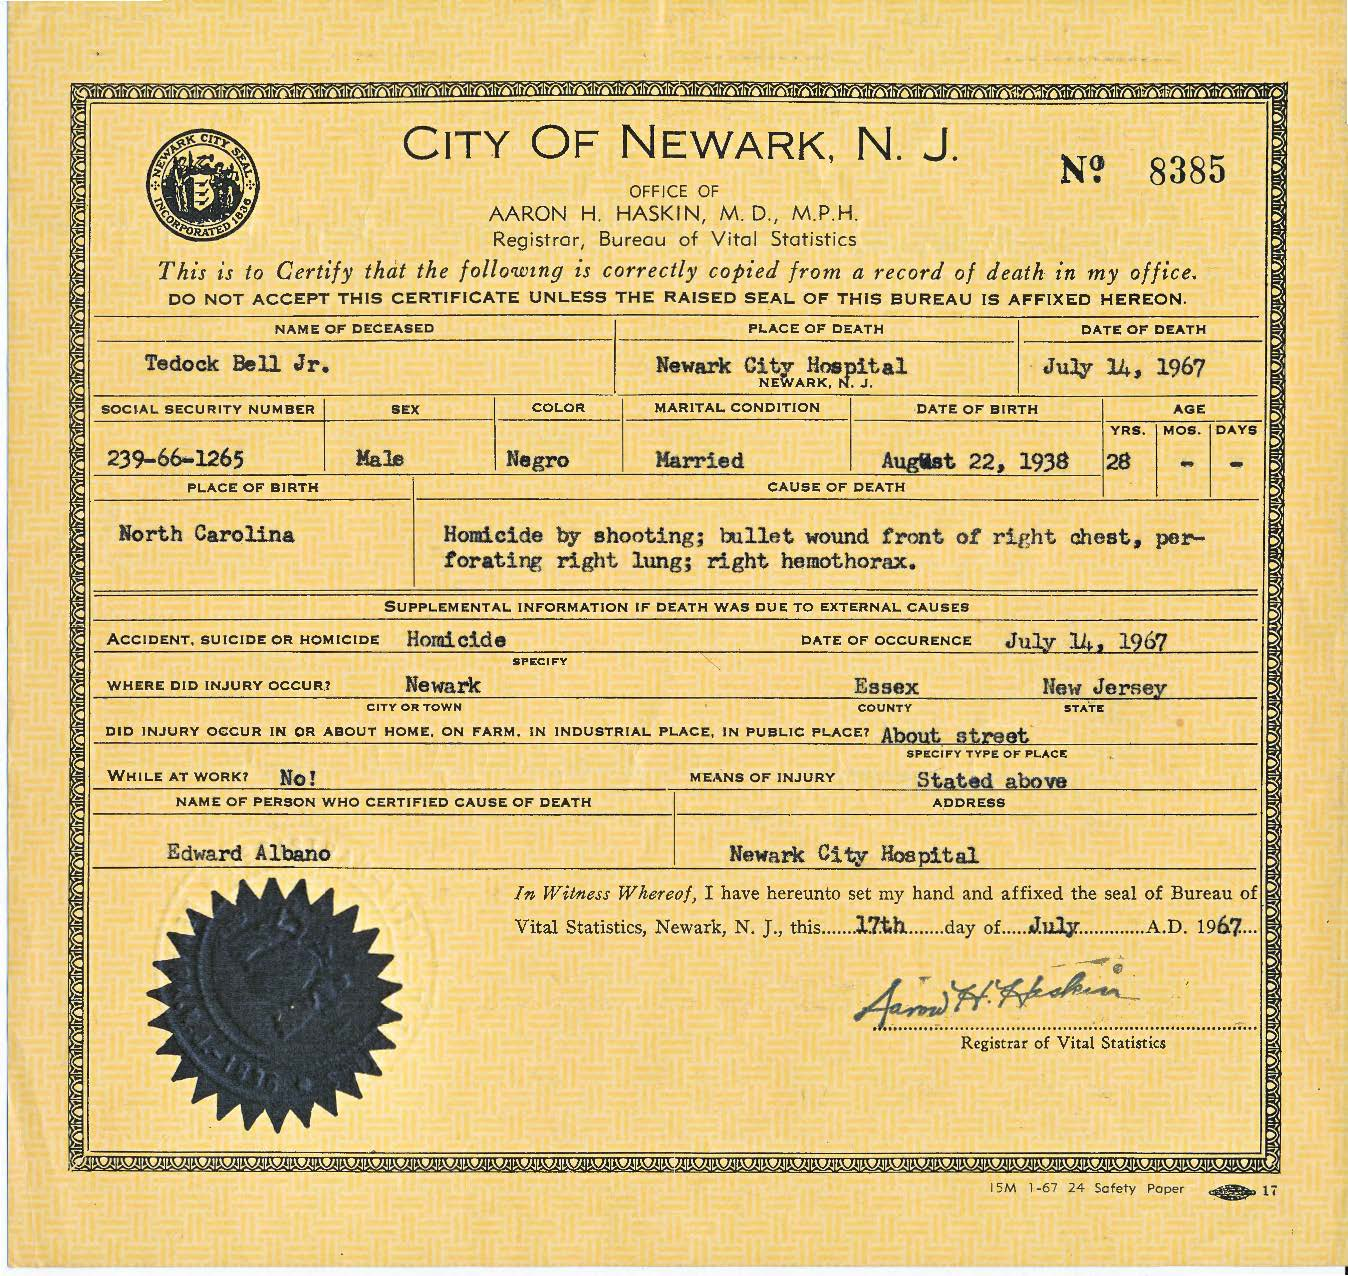 Tedock bell the north newark death certificate of tedock bell attributing the cause of his death to homicide by shooting bullet wound front of right chest junius williams papers aiddatafo Image collections